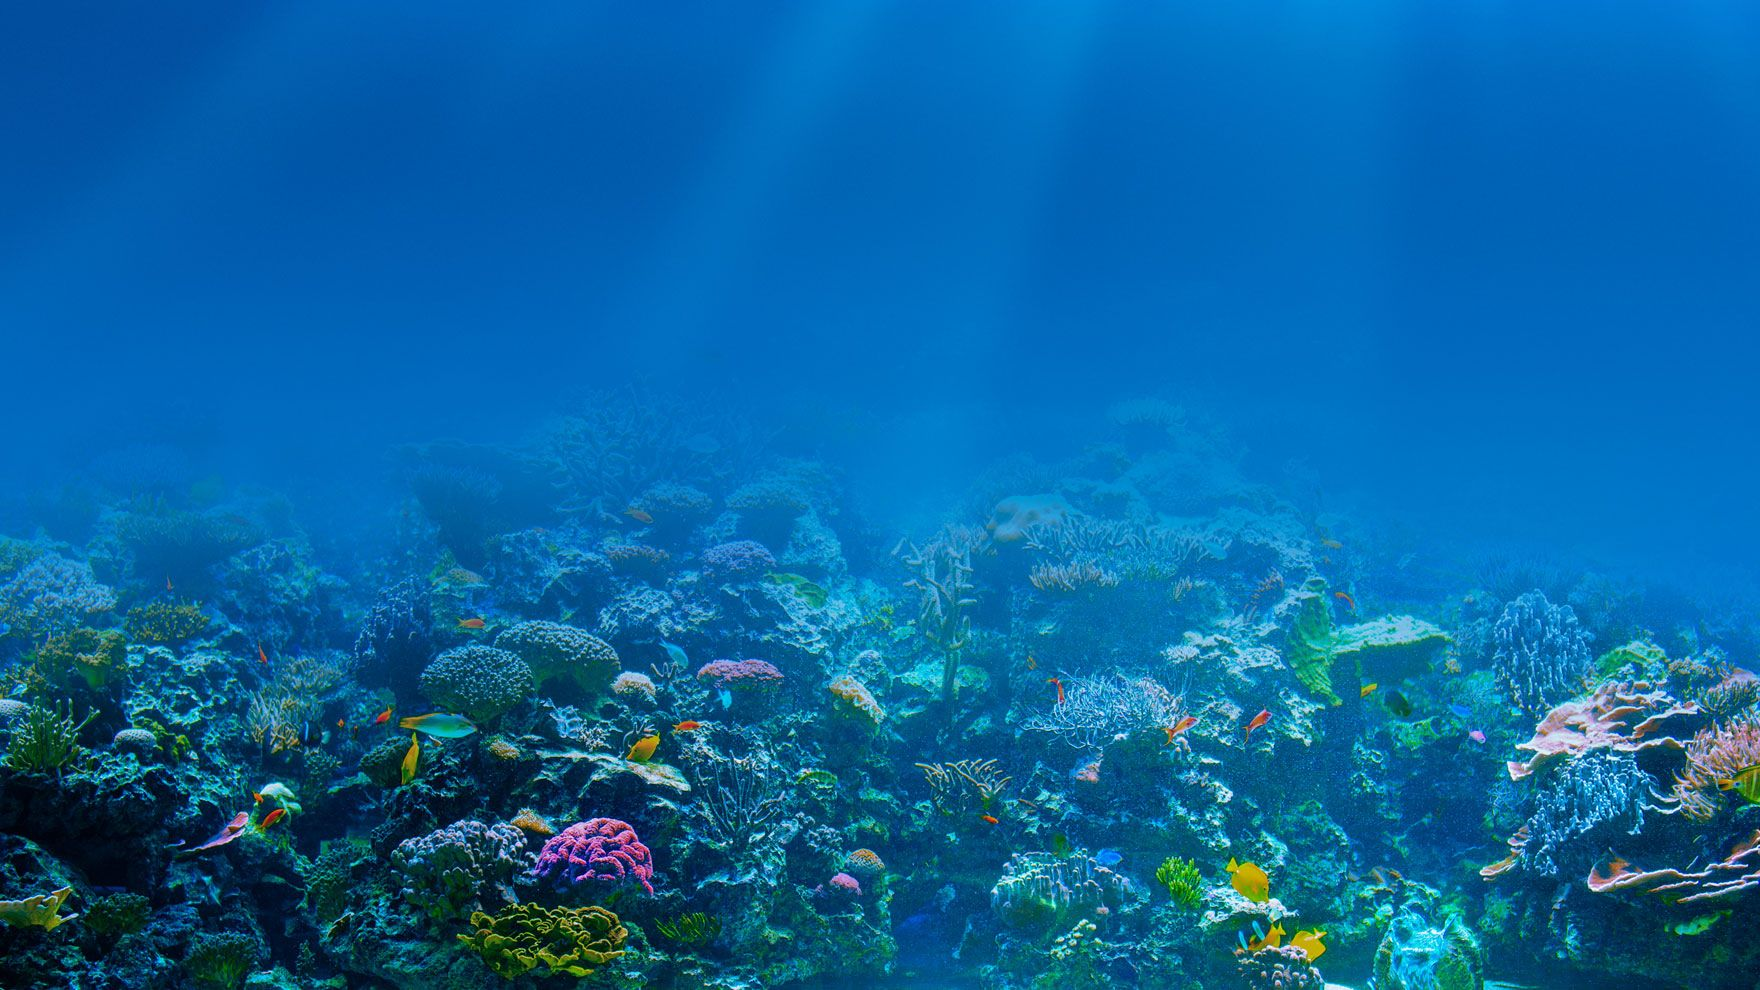 Protect the oceans